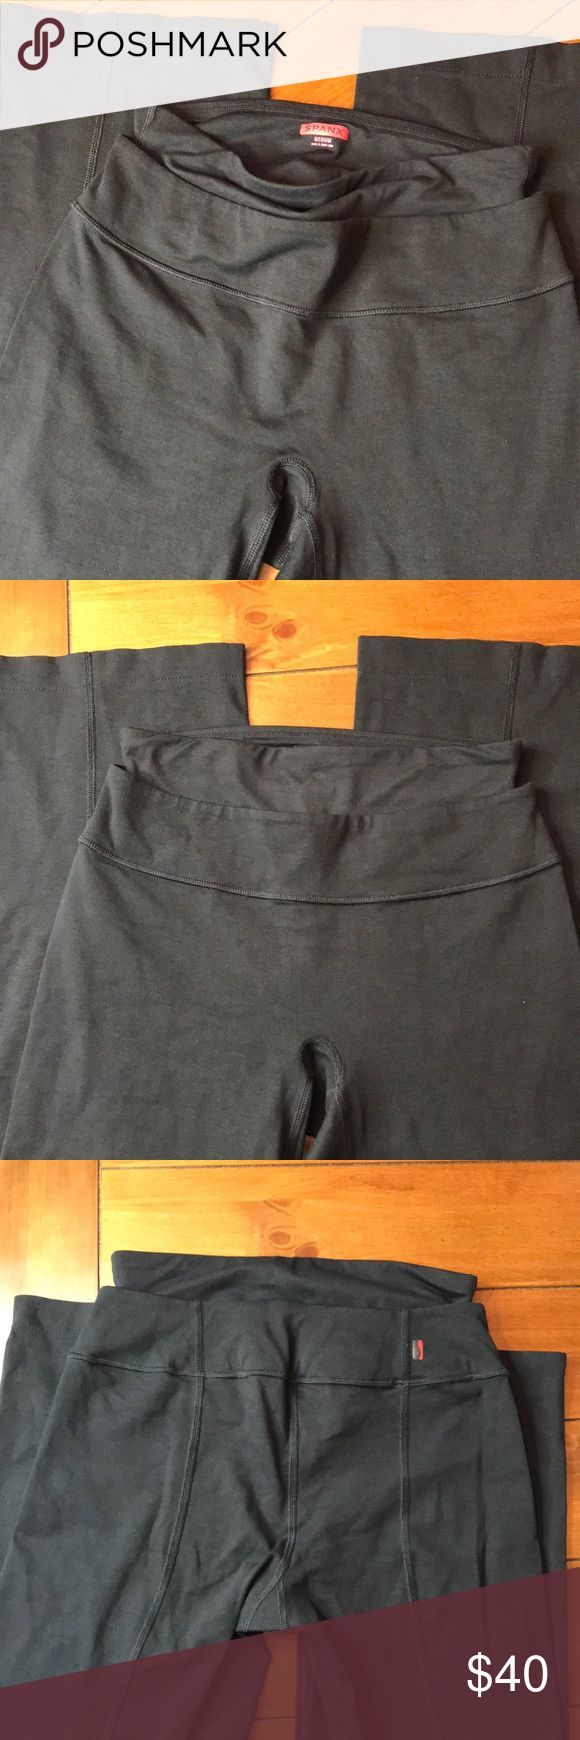 """{Spanx} Thick Black Legging with Spanx Support These leggings/ pants are AMAZING. They will hold you in! And in all the right places! I know the tag looks washed out, but the quality on these pants are amazing and the pants are in amazing shape! Look near new! The inseam is Approx 25"""" and the waist is approx 13"""". These are not tight at the bottom and measure at approx 8.5"""" SPANX Pants Leggings"""